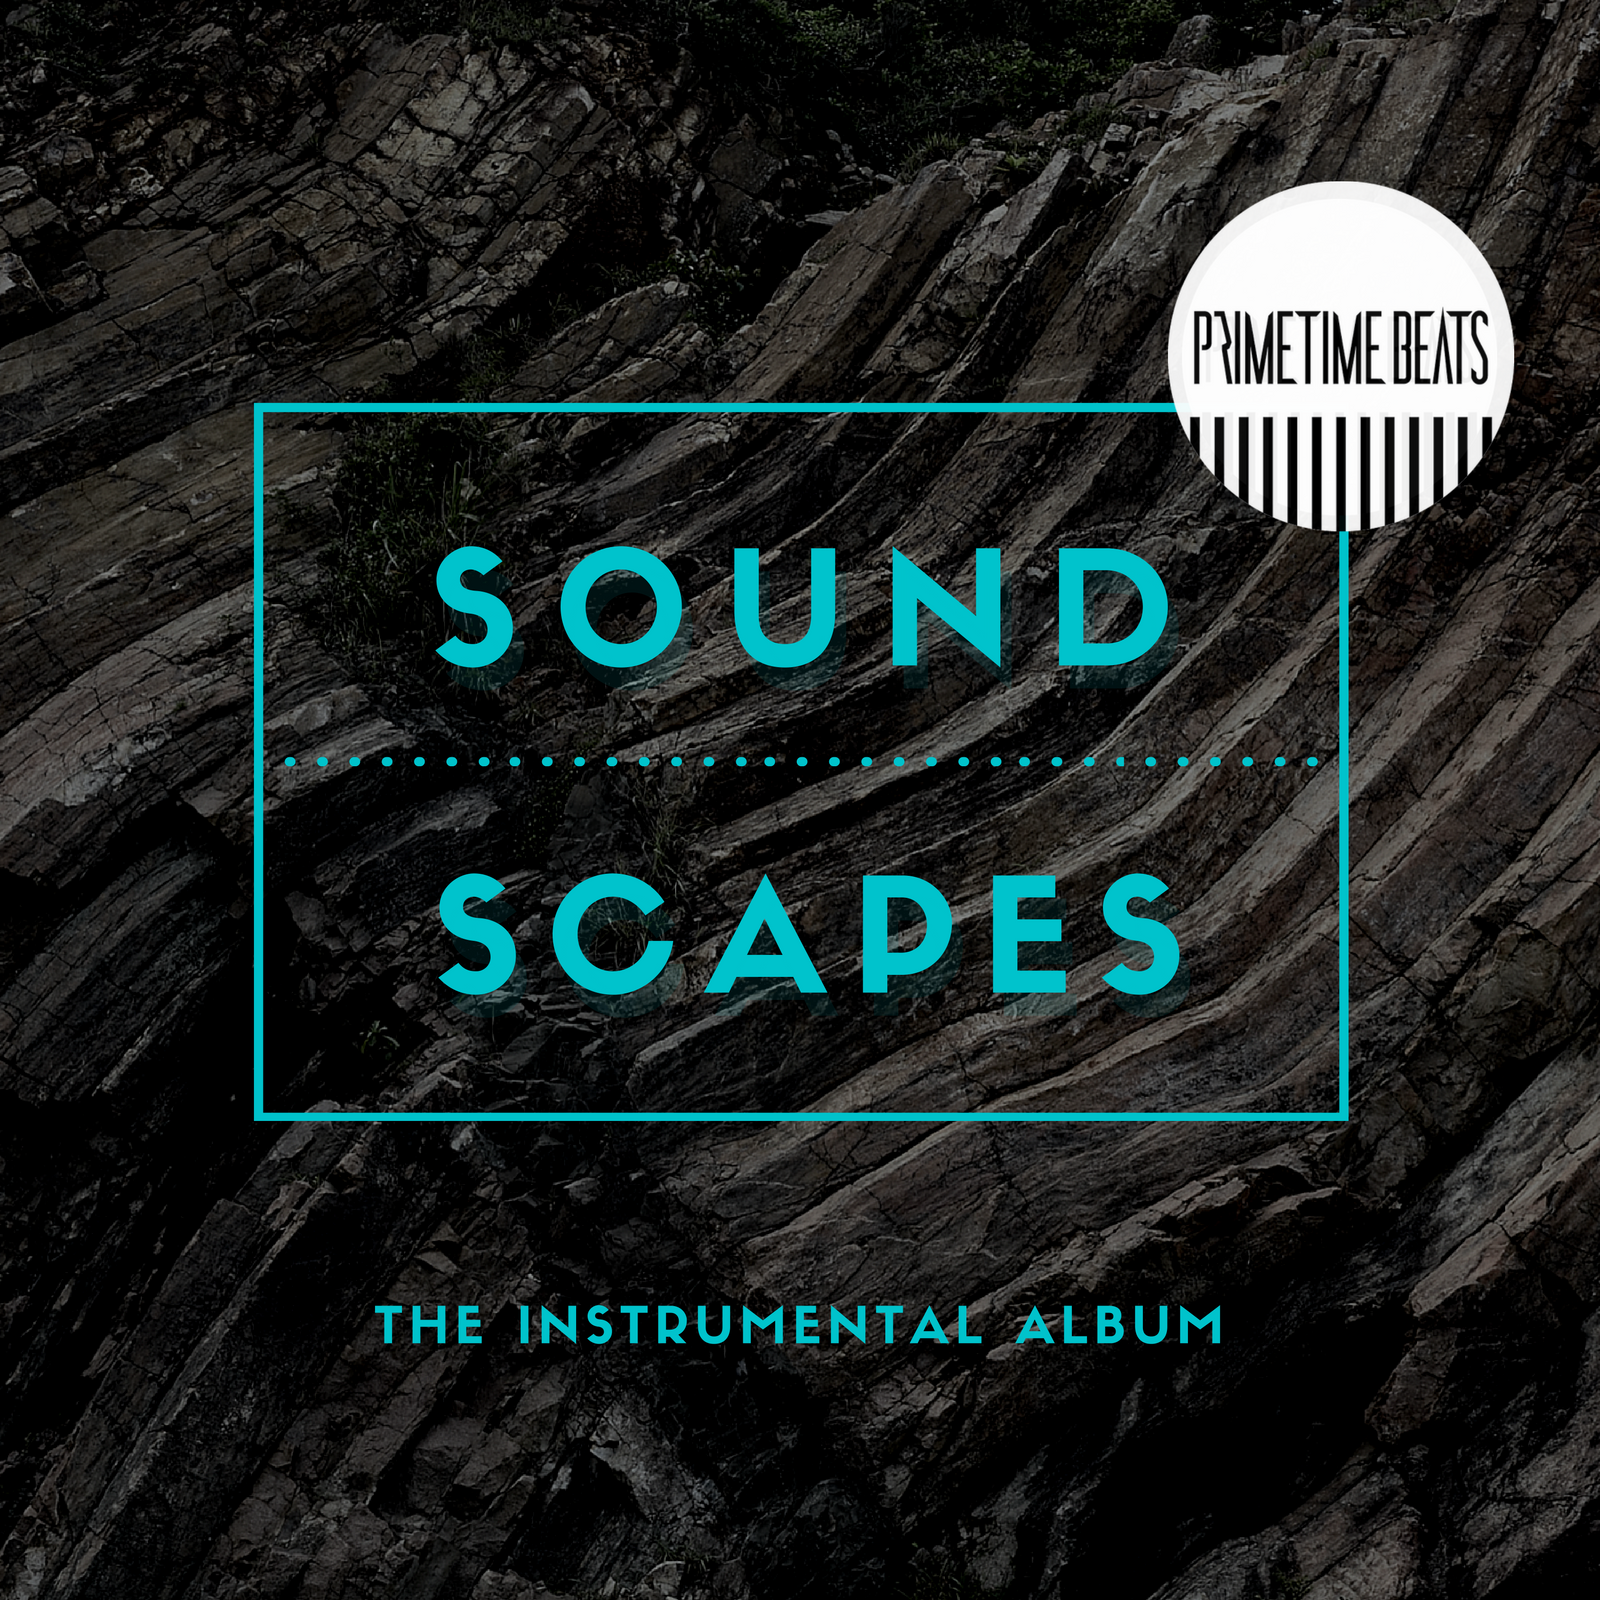 SOUND SCAPES Front Cover (2).png